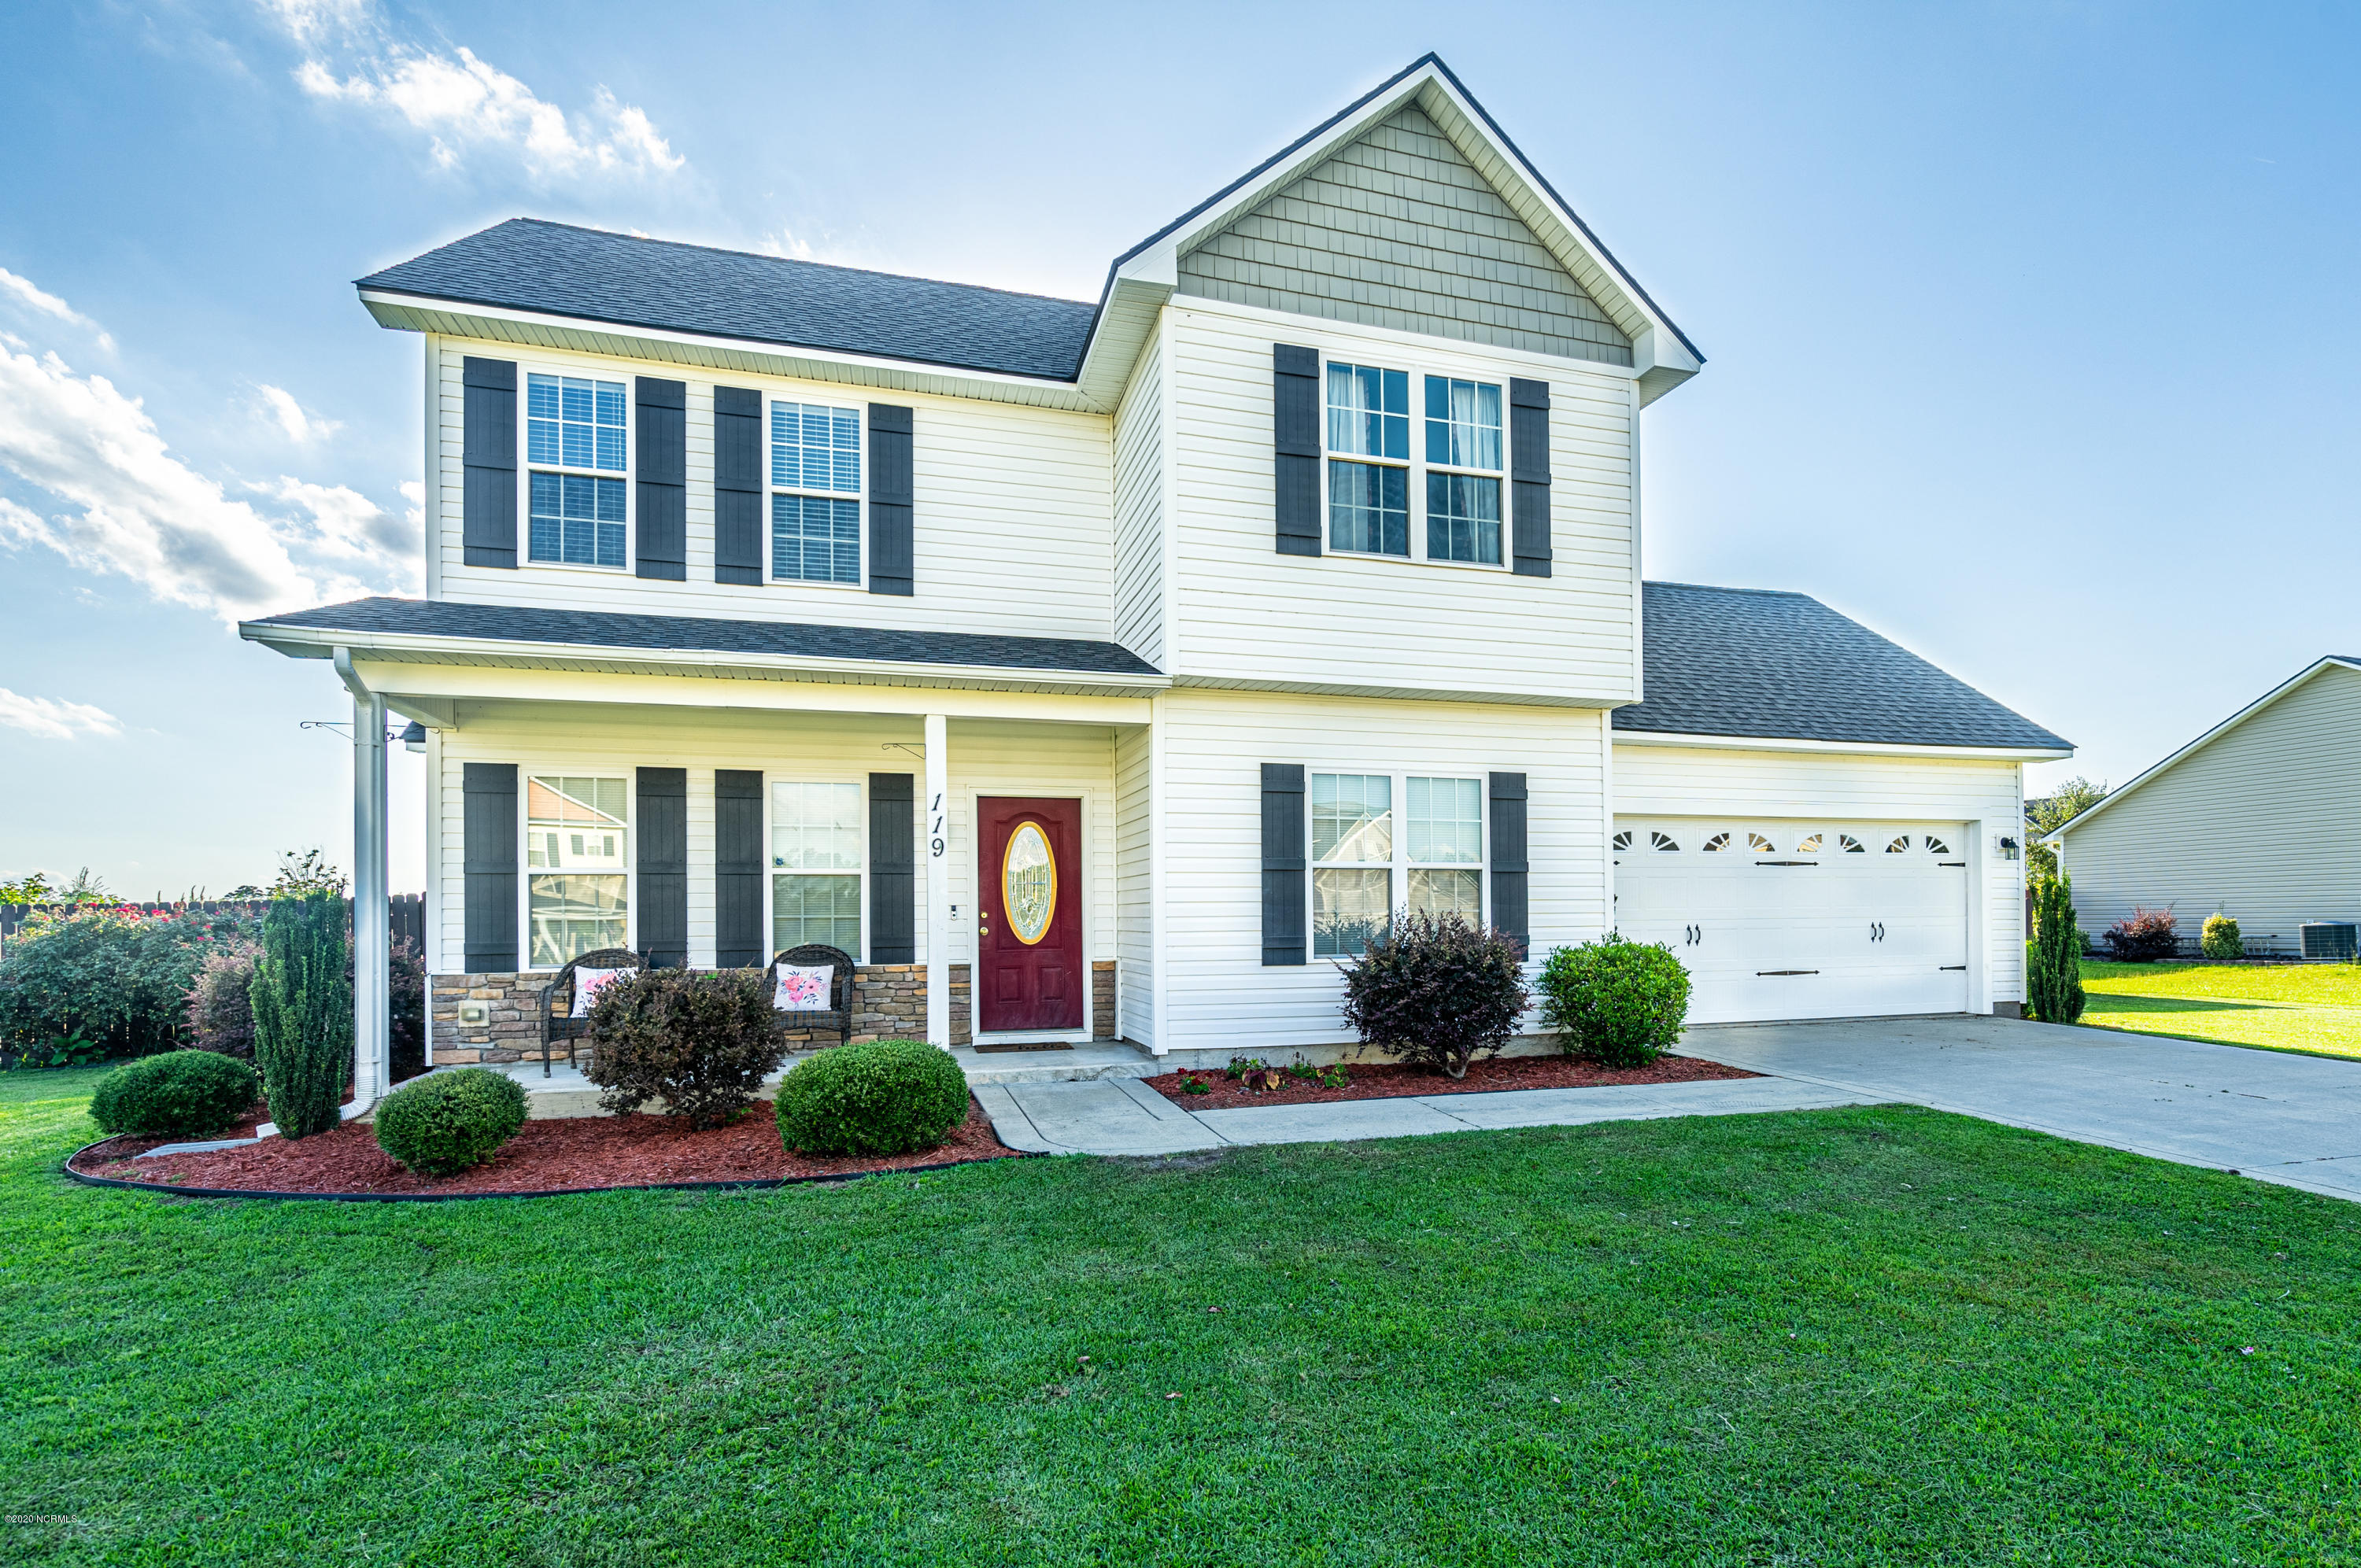 119 Buckhaven Drive, Richlands, North Carolina 28574, 3 Bedrooms Bedrooms, ,2 BathroomsBathrooms,Residential,For Sale,Buckhaven,100226826